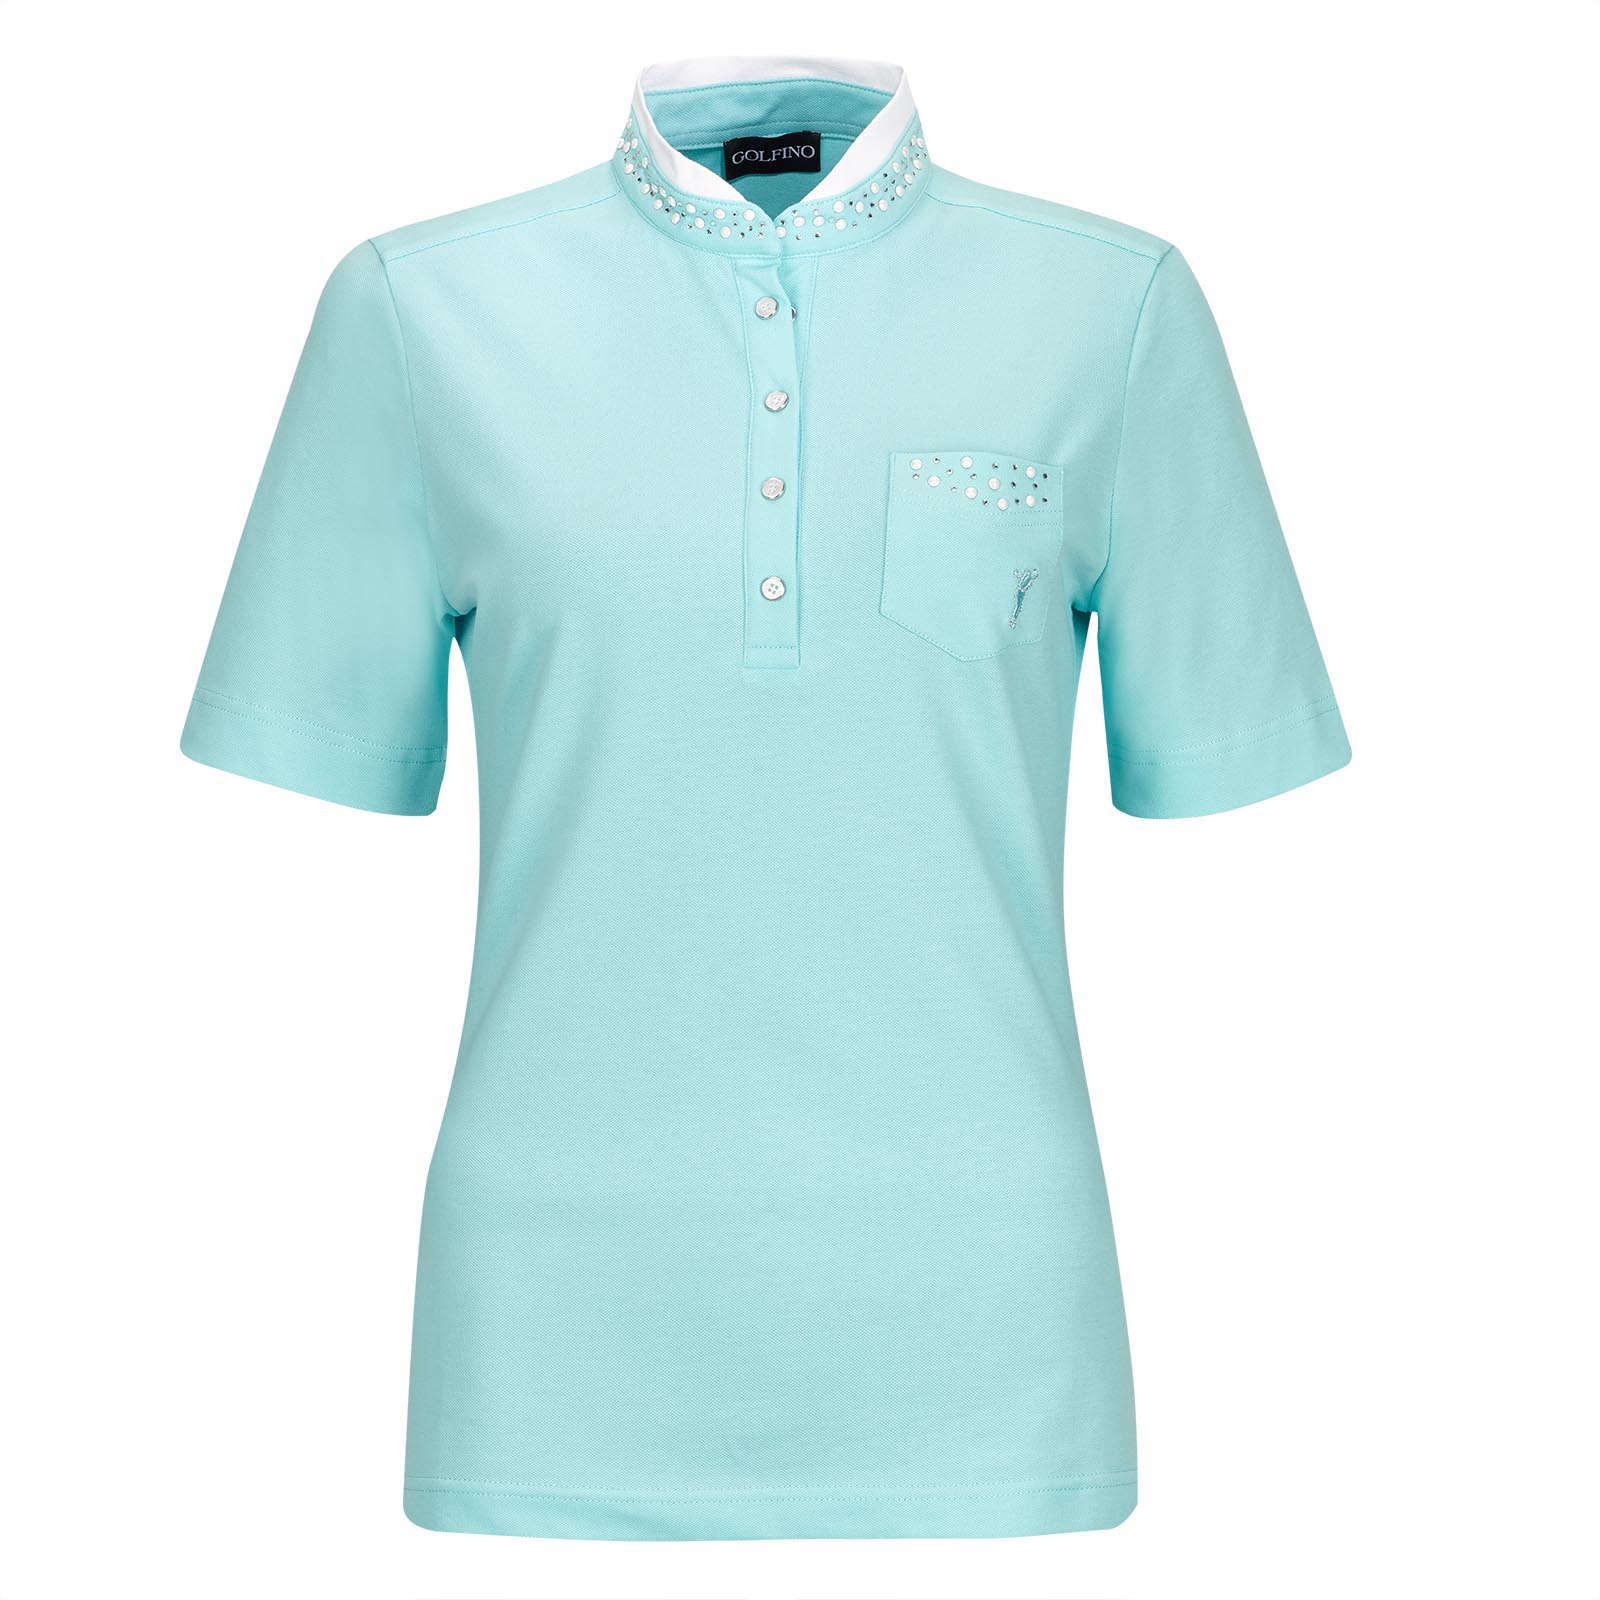 Damen Kurzarm Cotton Blend Golfpolo Key Largo mit Stretchfunktion